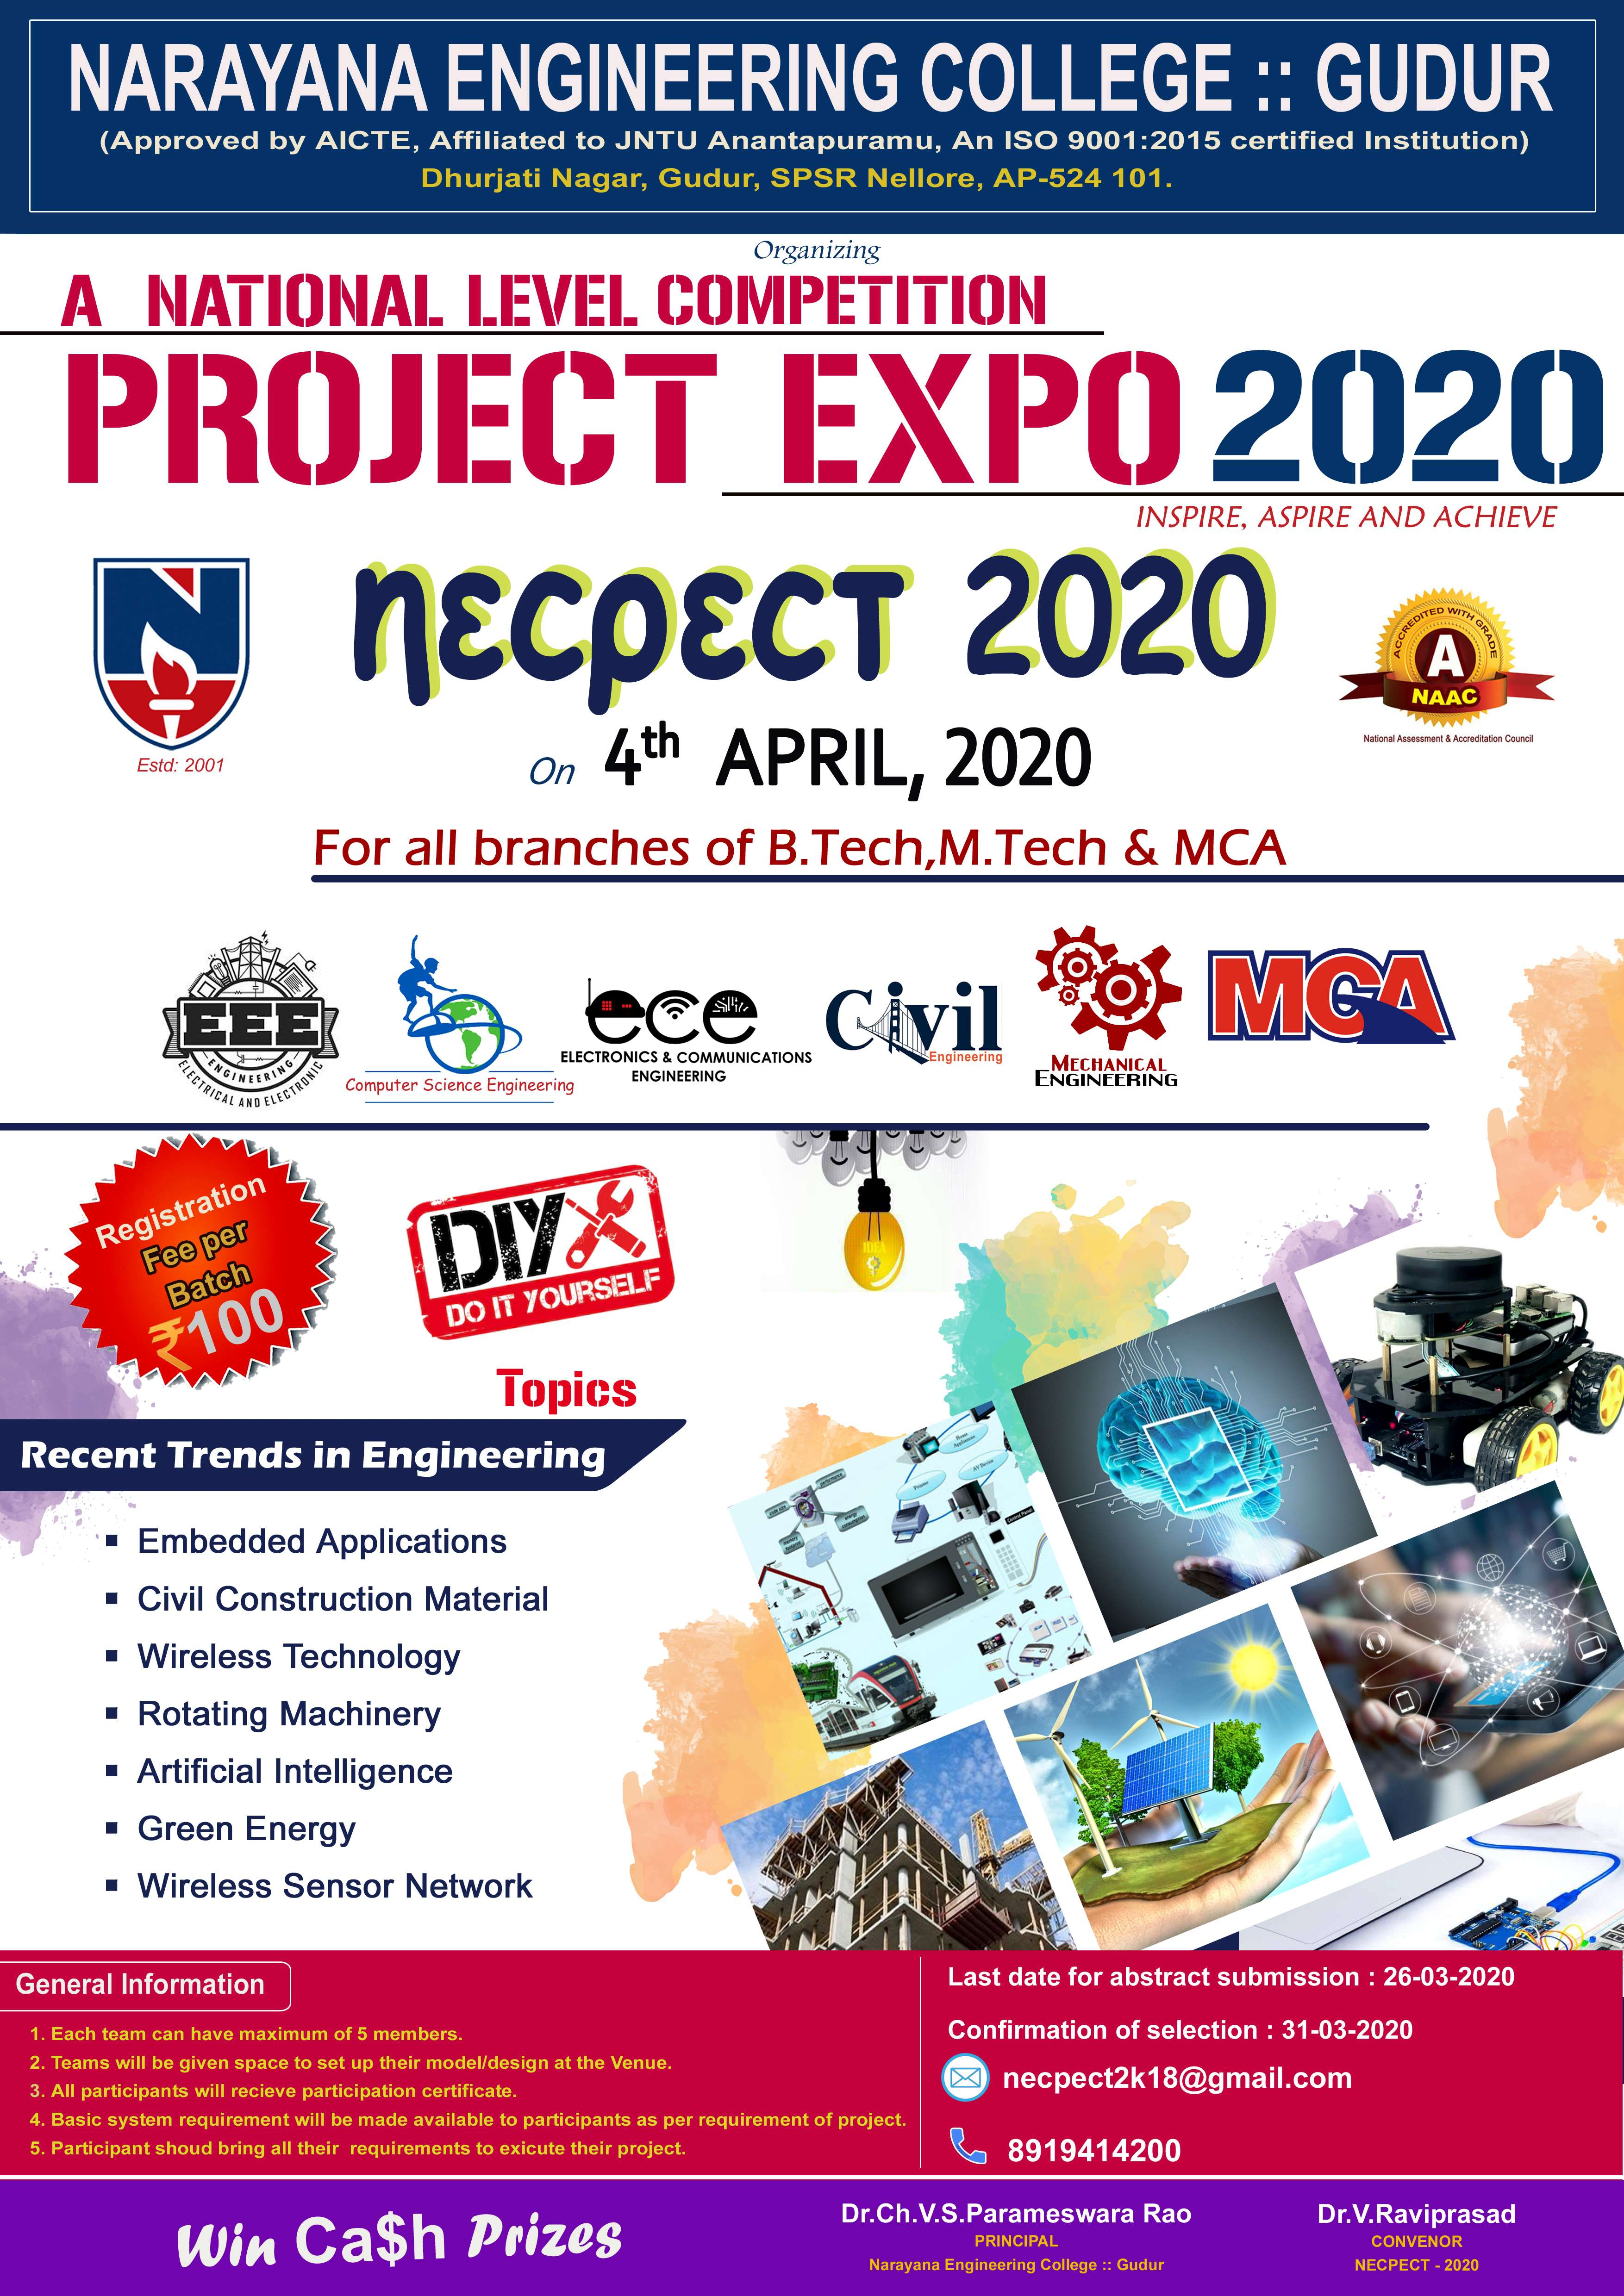 Project Expo 2020